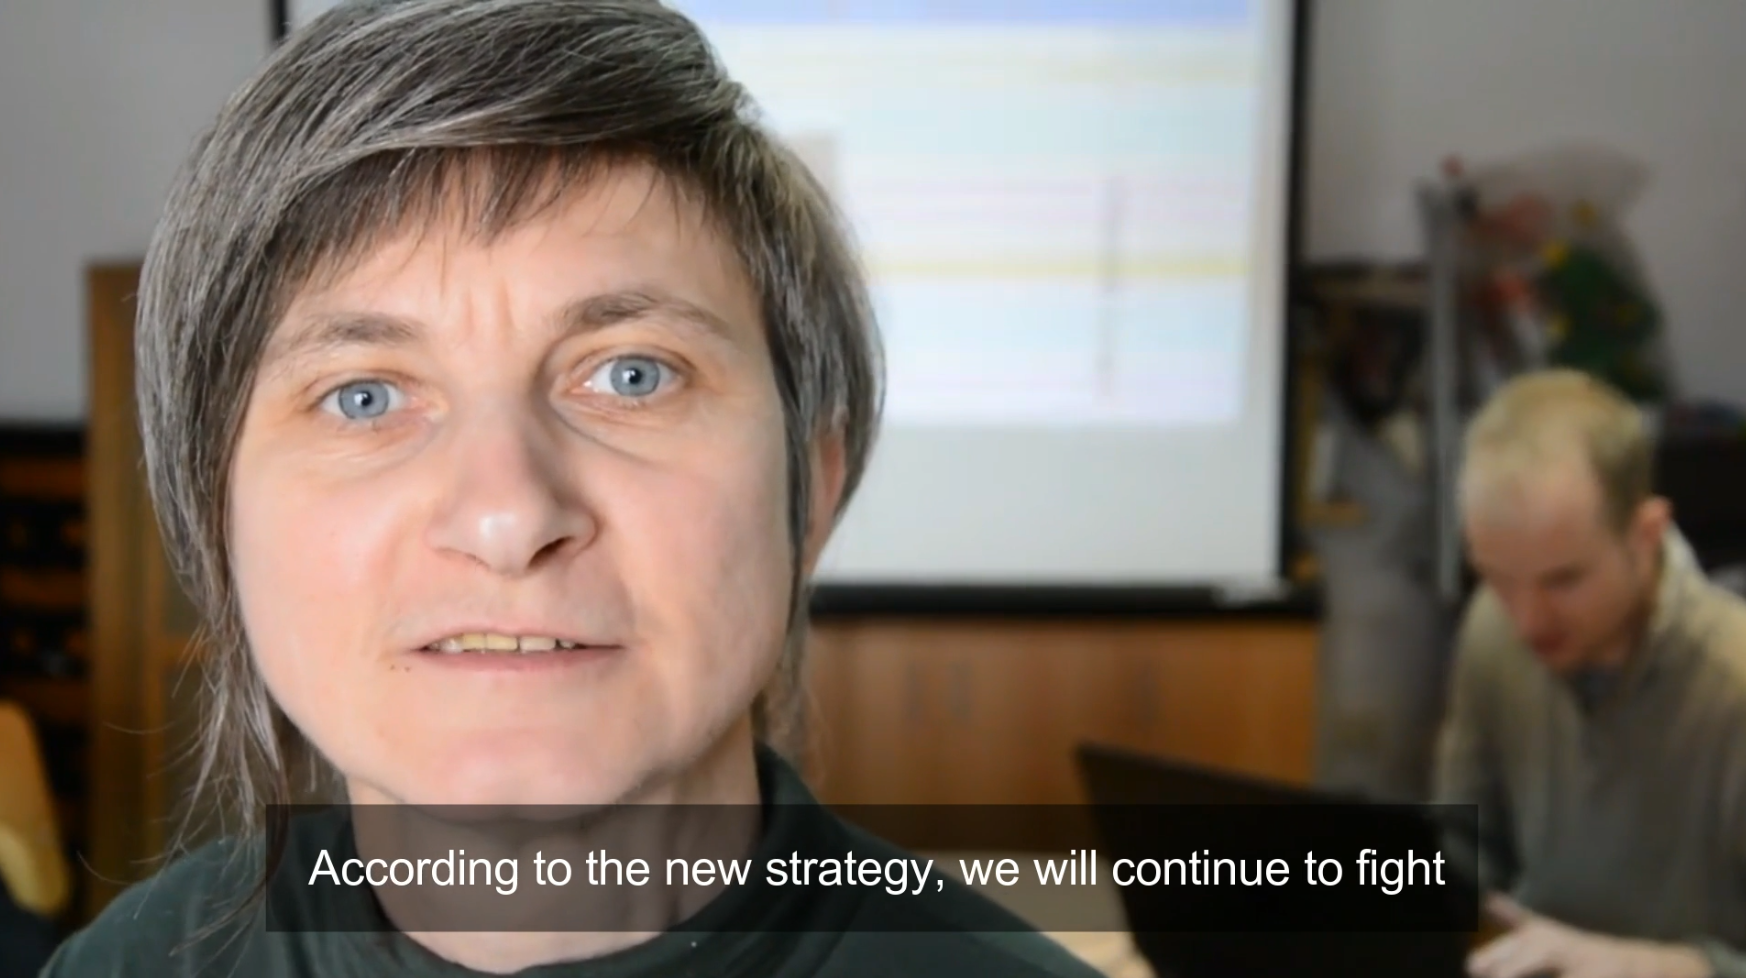 Senada Halilčević talks about our new strategy